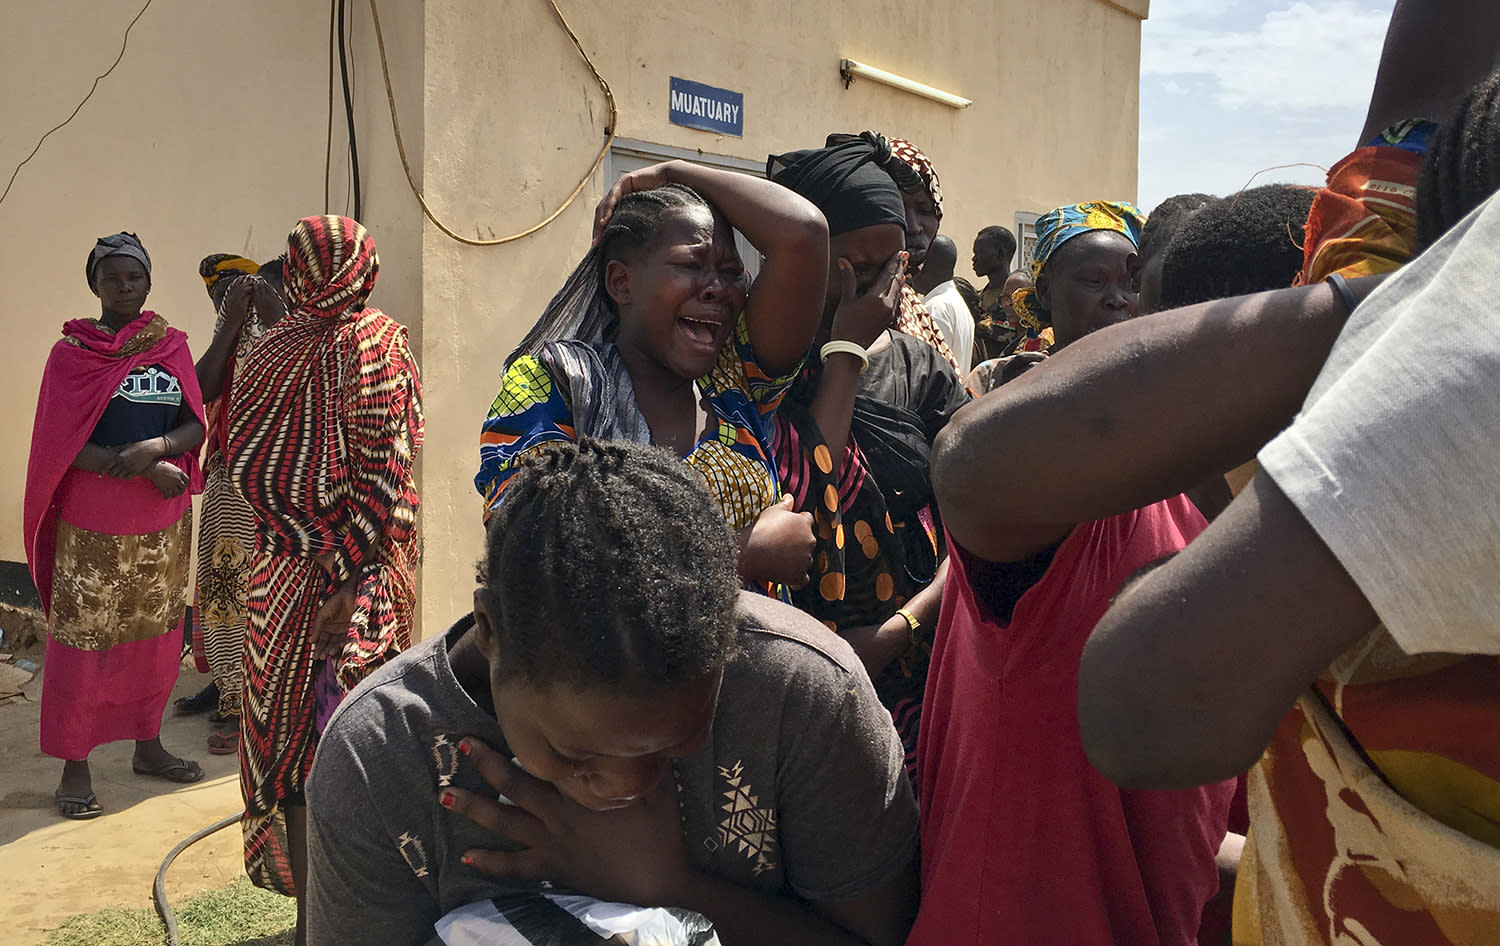 <p>Relatives of the six aid workers who were ambushed and killed grieve as they wait to collect and bury the bodies of their loved ones, outside the morgue in Juba, South Sudan Monday, March 27, 2017. The ambush of the six aid workers took place Saturday on the road from Juba, the capital, to Pibor, and is the latest of several attacks on aid workers in the country where at least 12 aid workers have been killed so far this year and 79 since civil war began in 2013. (AP) </p>